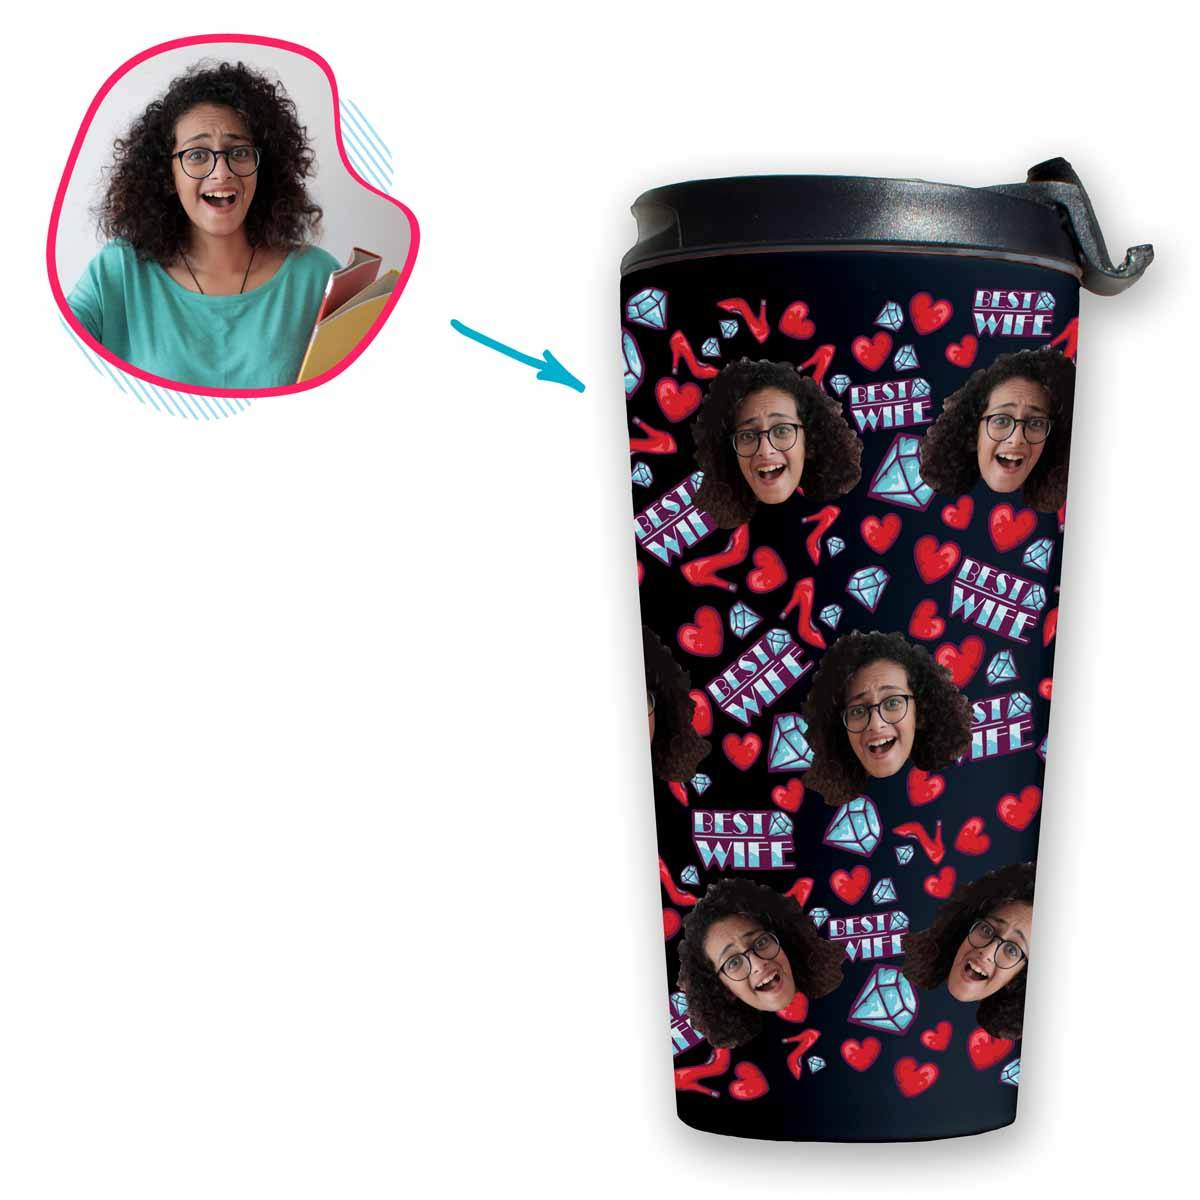 Dark Wife personalized travel mug with photo of face printed on it